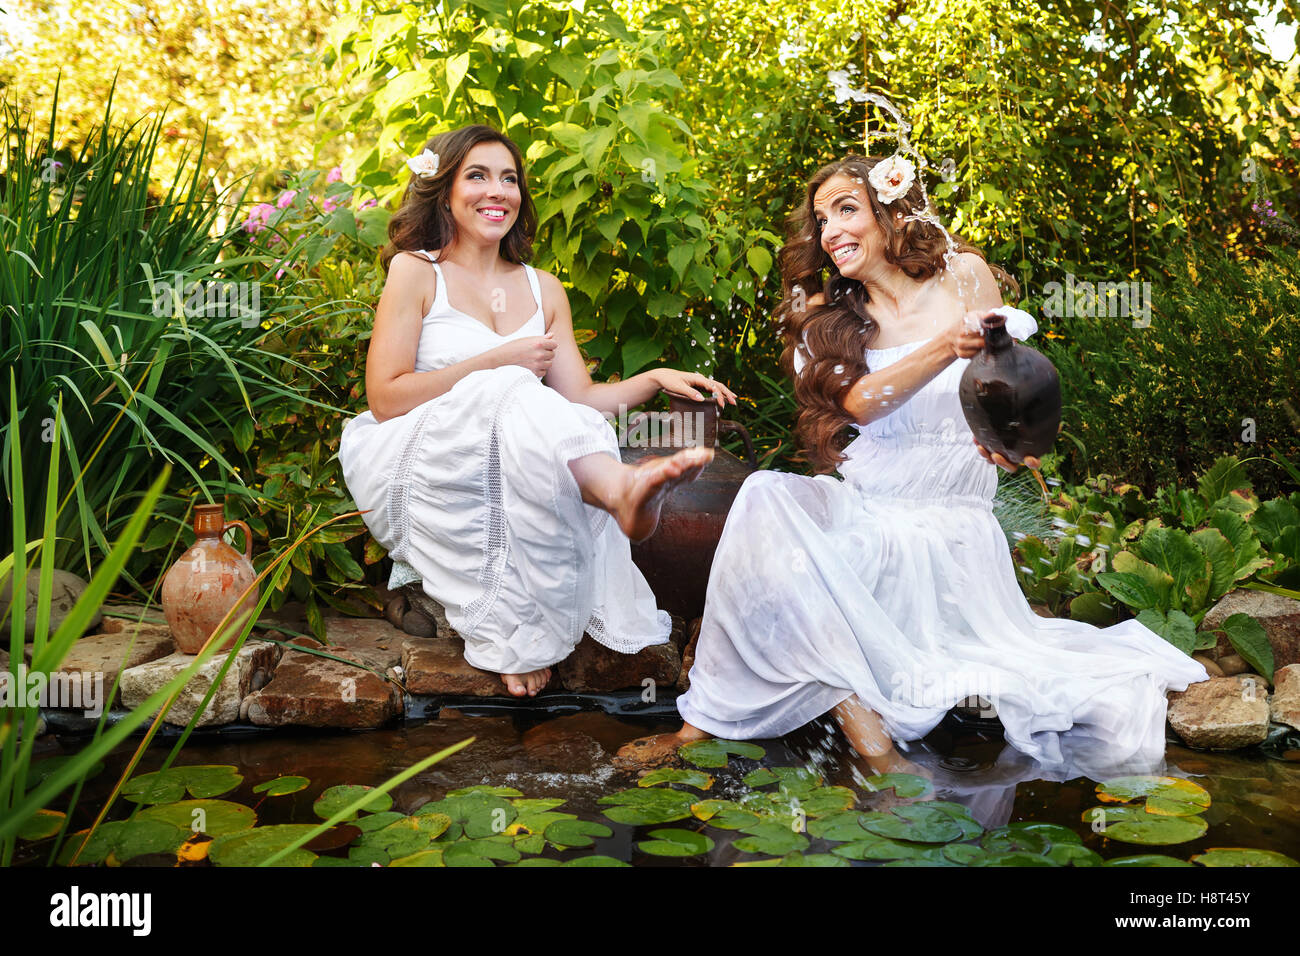 Two Cute Sisters In White Dresses At The Pond With Water Lilies